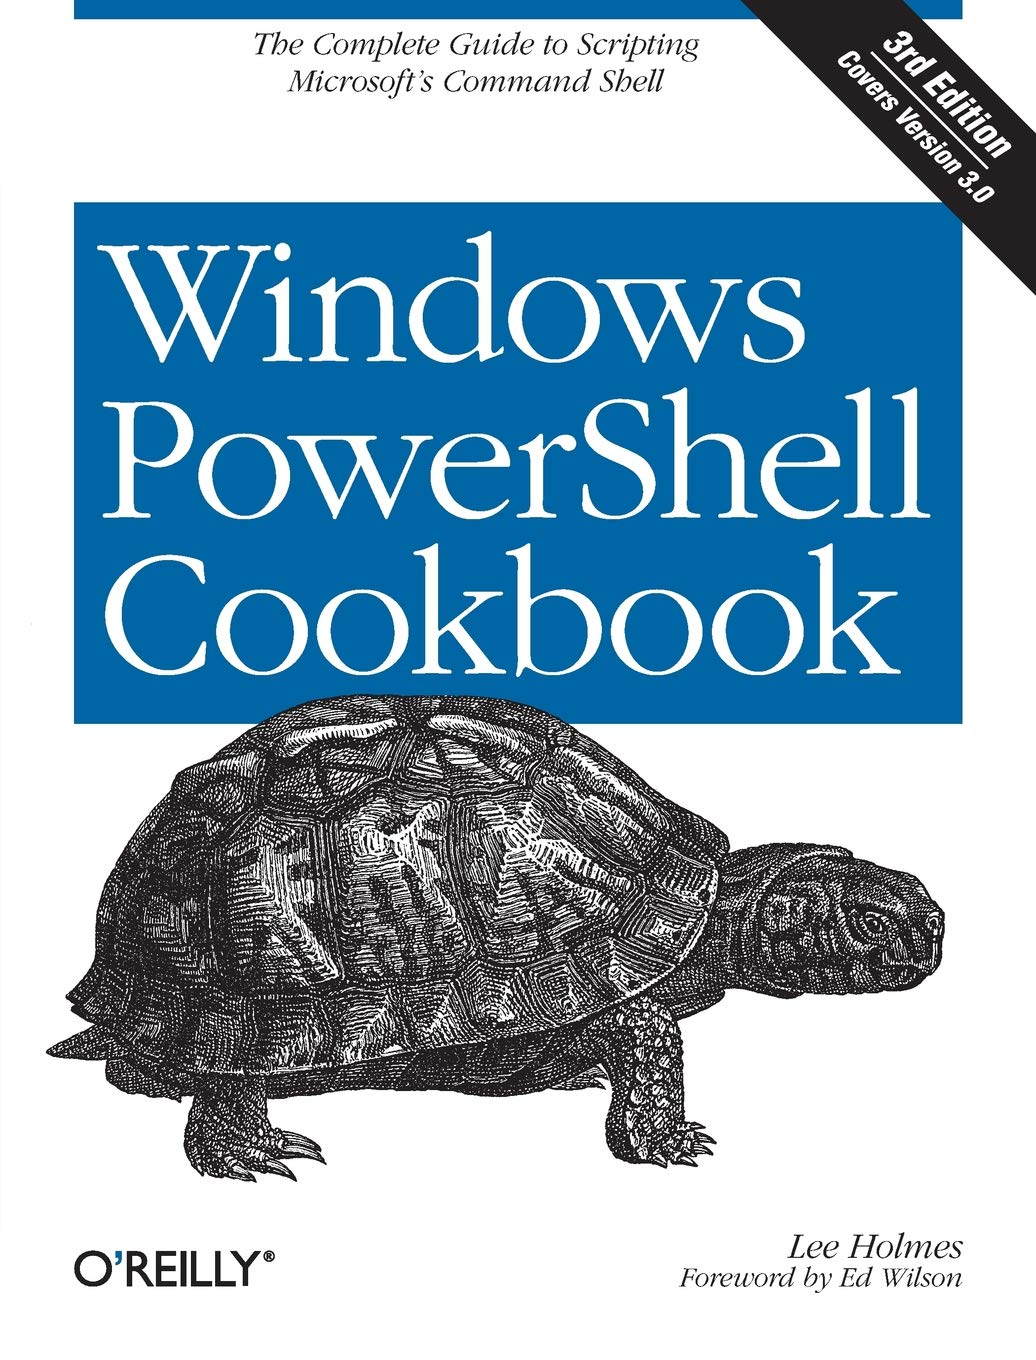 Windows PowerShell Cookbook: The Complete Guide to Scripting Microsoft's Command Shell by Brand: O'Reilly Media